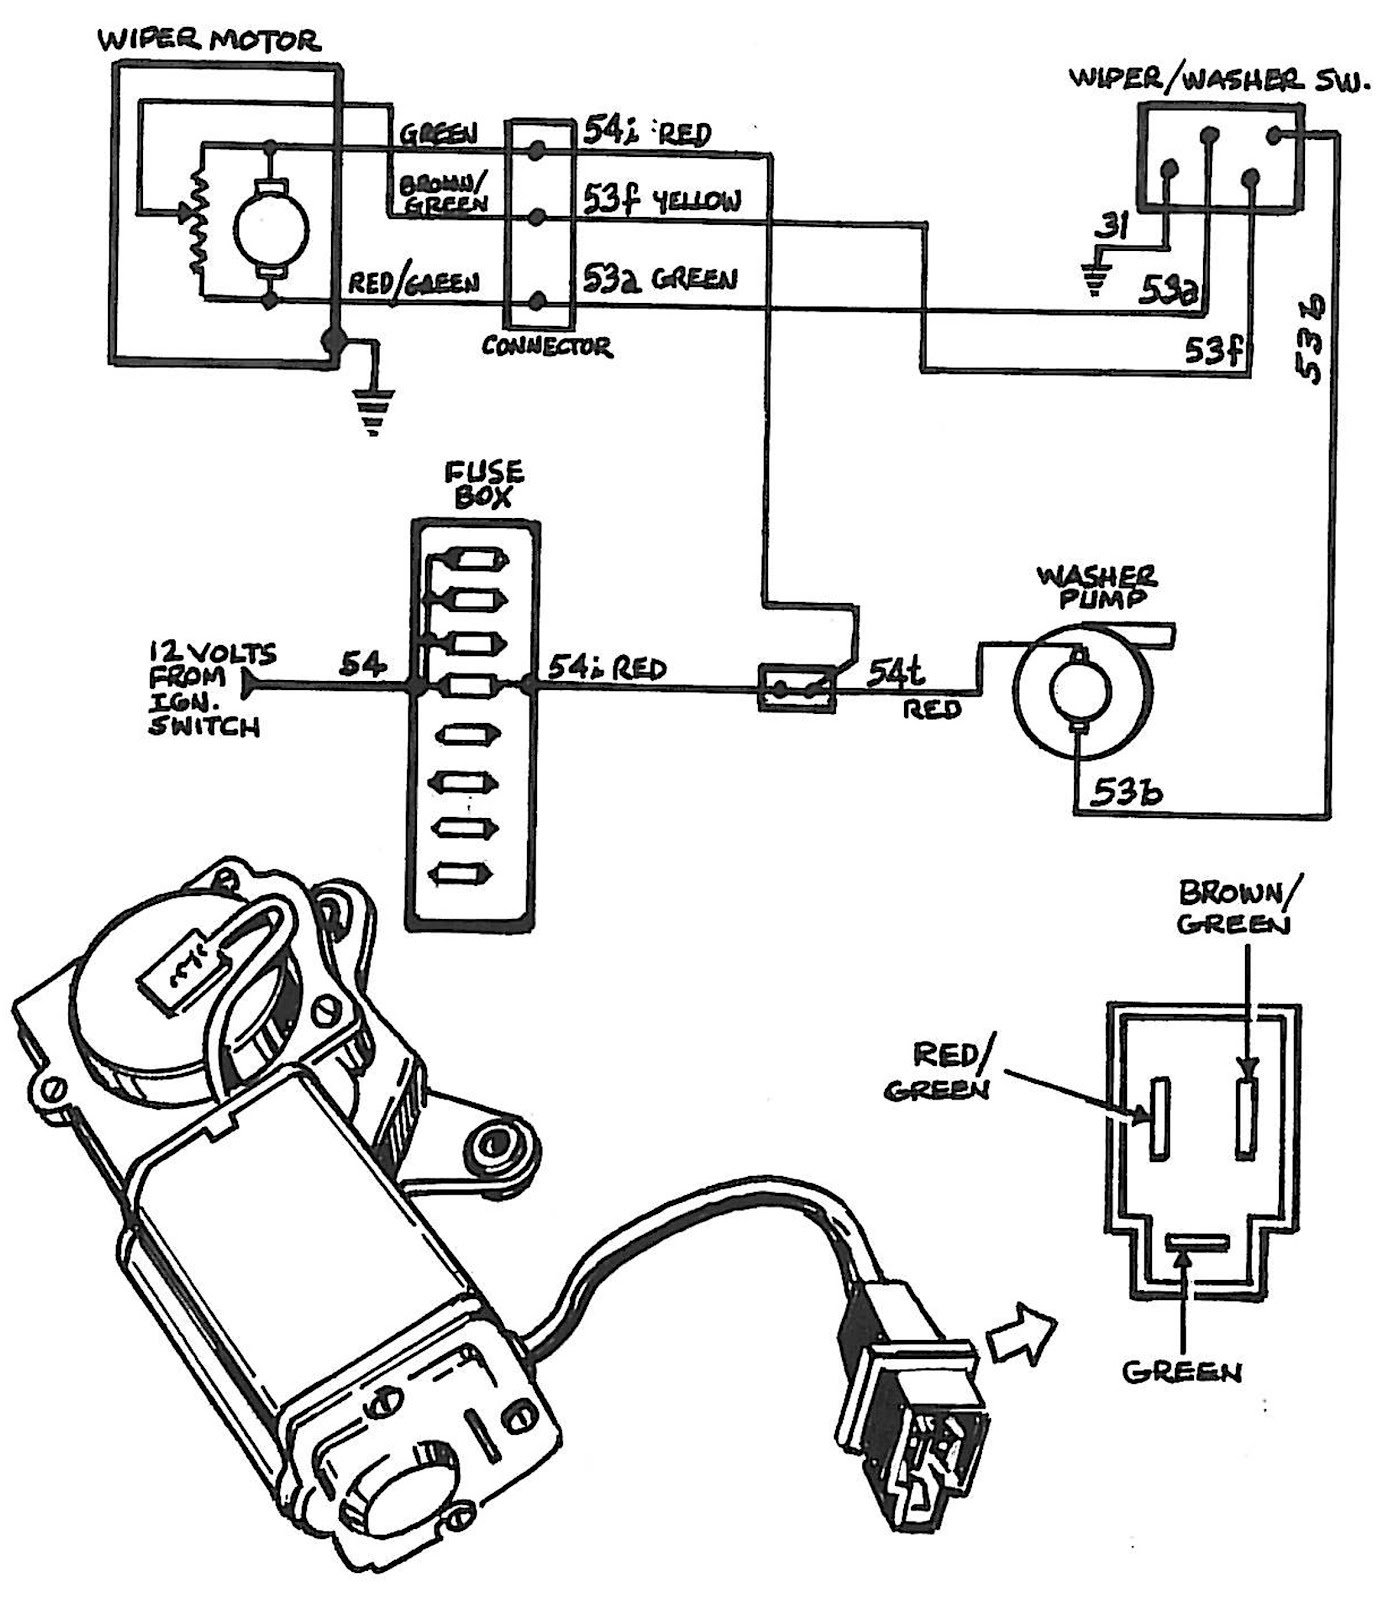 chevy windshield wiper motor wiring diagram CgTTPww trico wiper motor wiring diagram windshield wiper motor diagram sprague wiper motor wiring diagram at mifinder.co